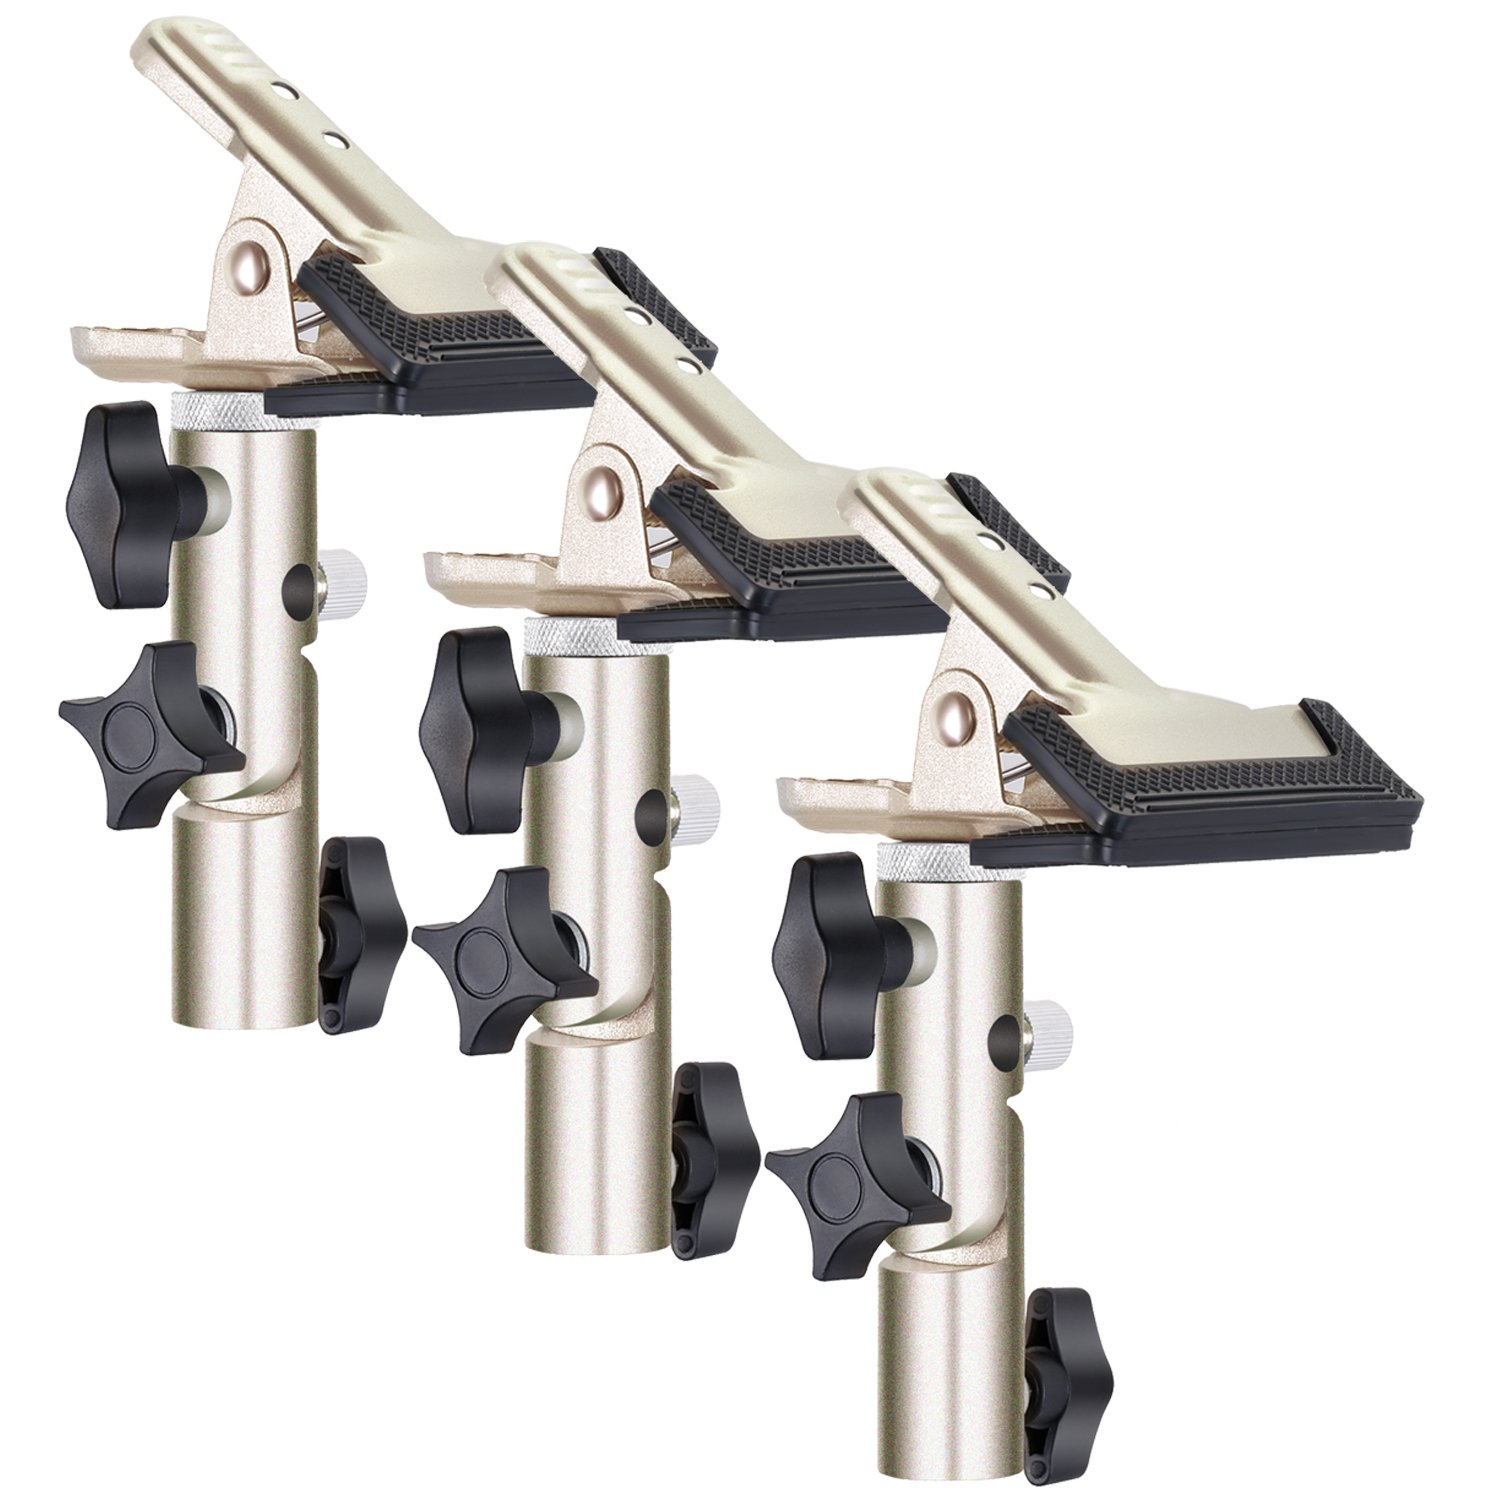 Neewer 3-Pack Heavy Duty Metal Spring Clamp Holder with 5/8.